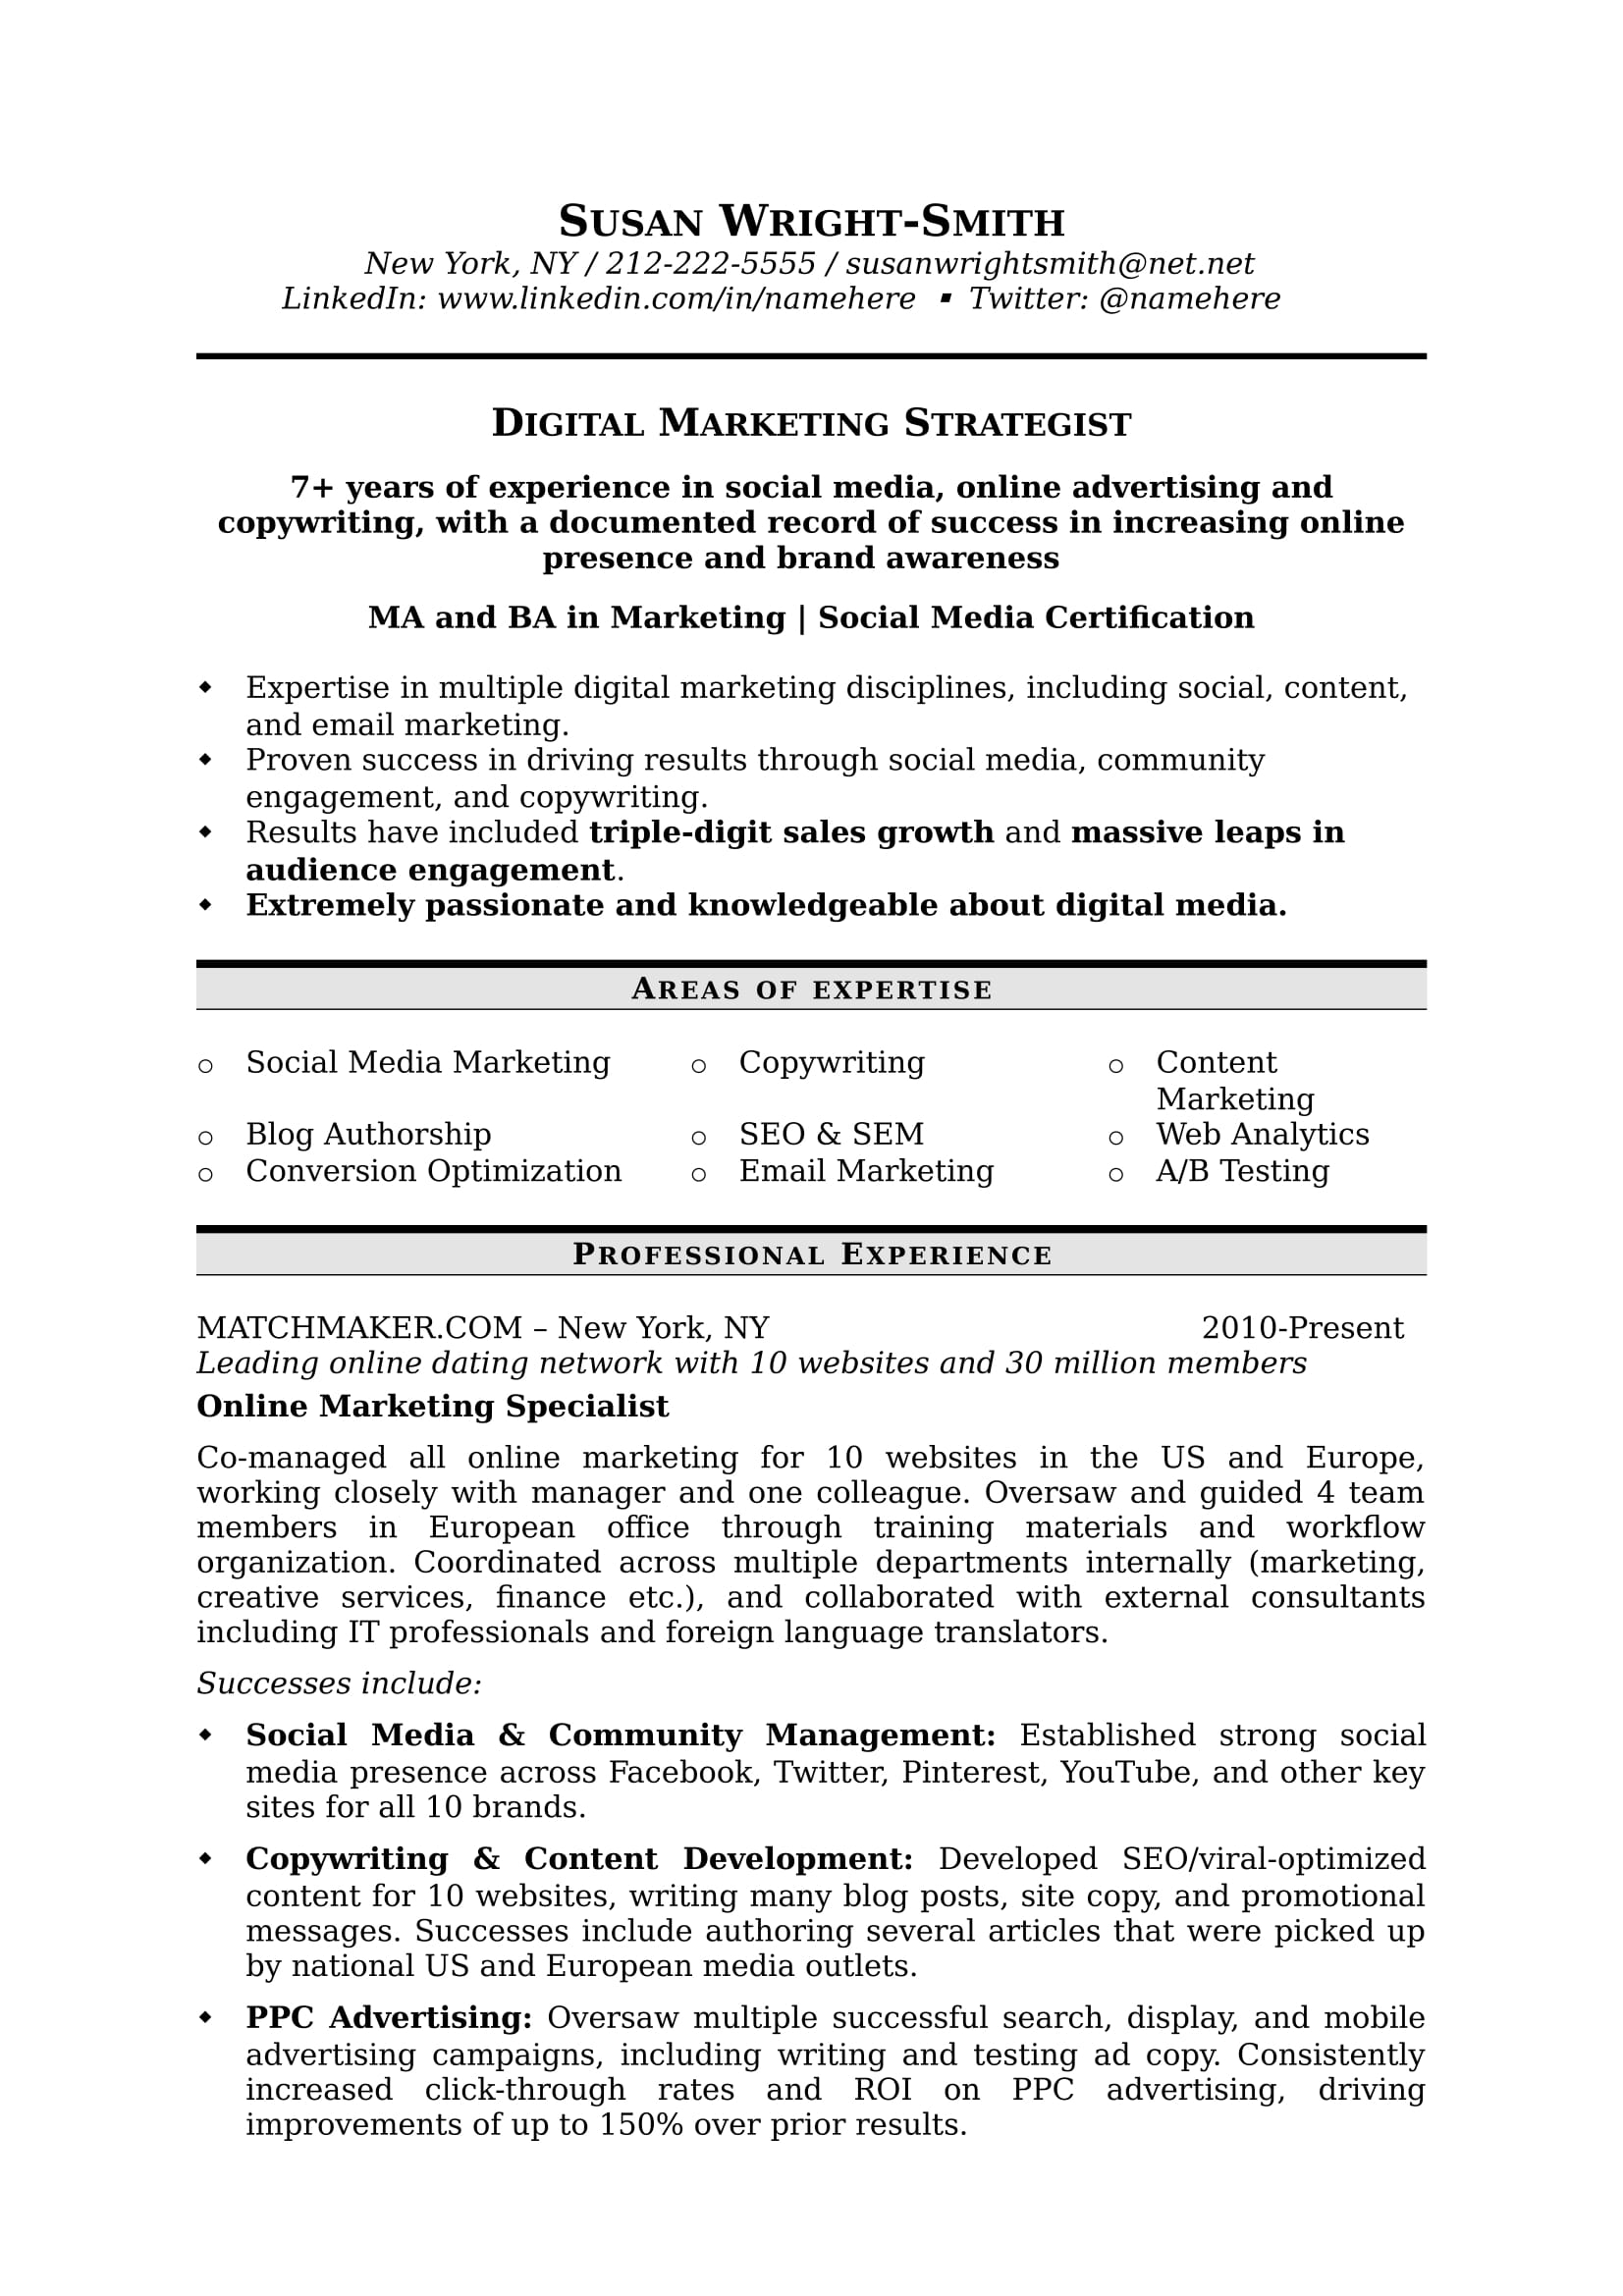 to write marketing resume hiring managers notice free templates samples best for job Resume Best Resume For Marketing Job